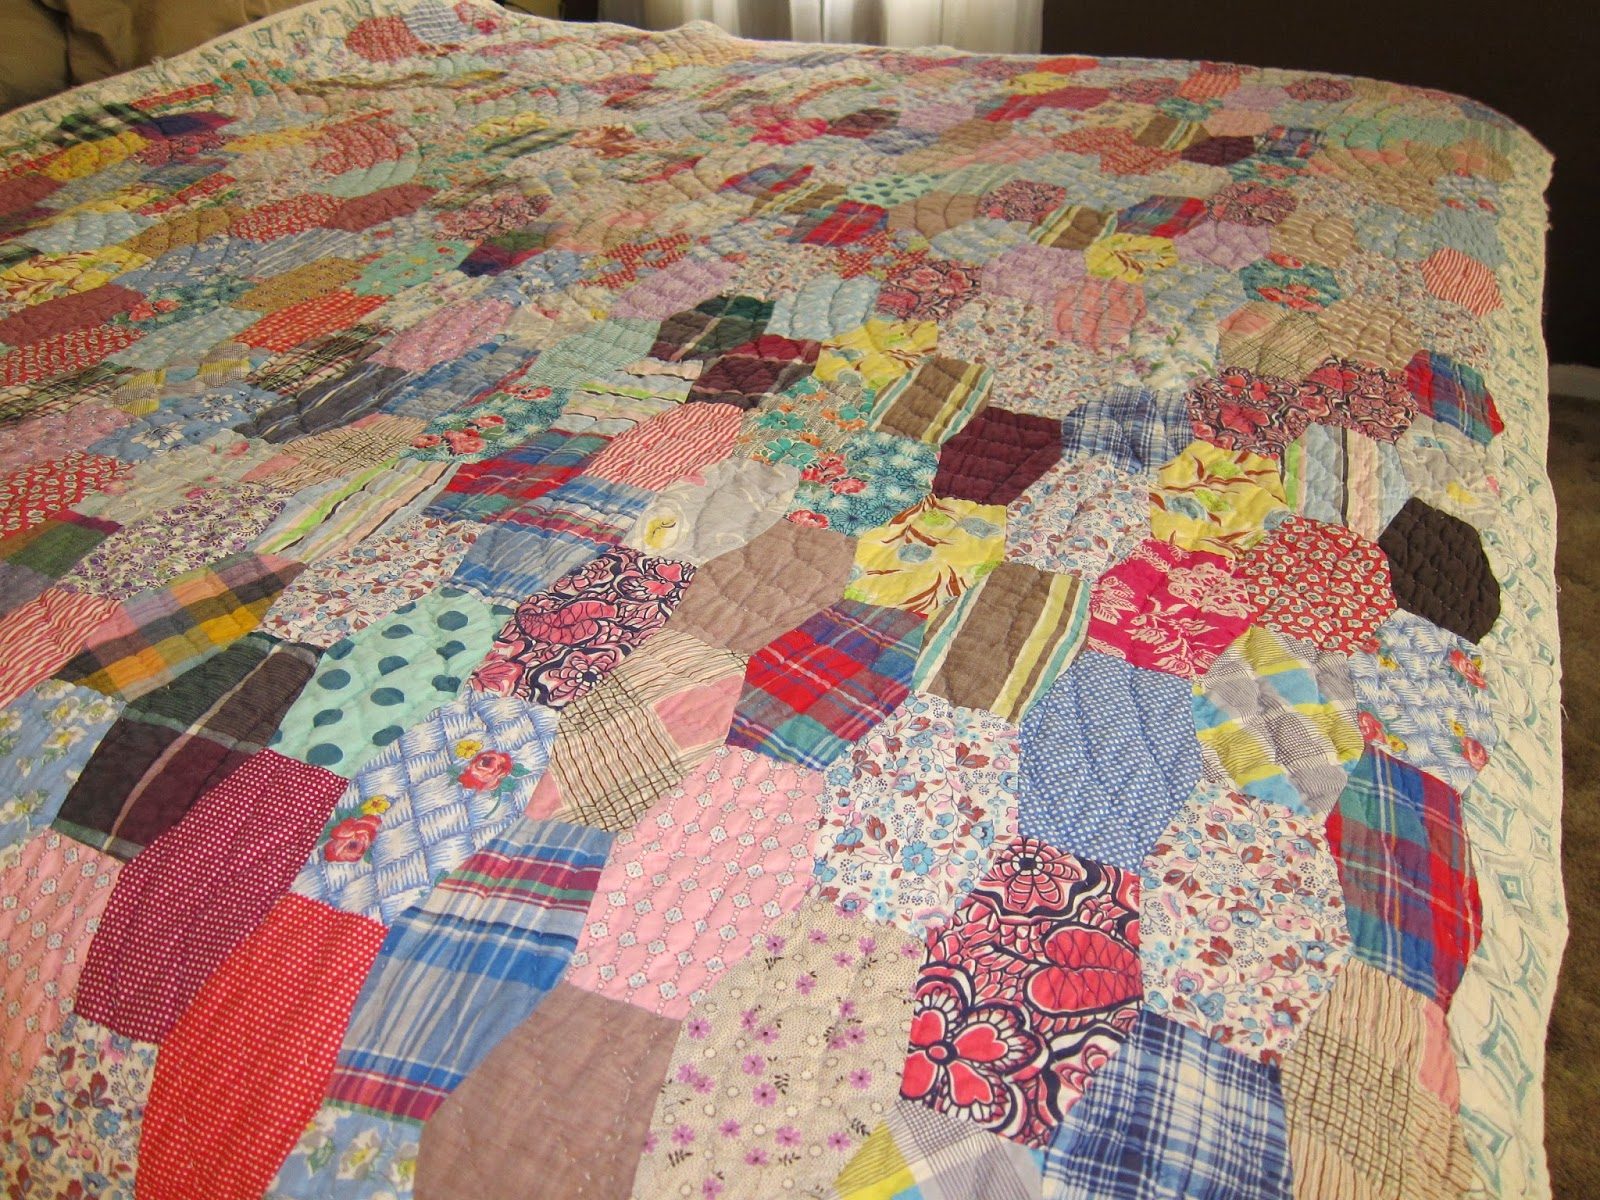 Beequilt hexagones brod s jardins de grand m re sur for What to do with an old quilt